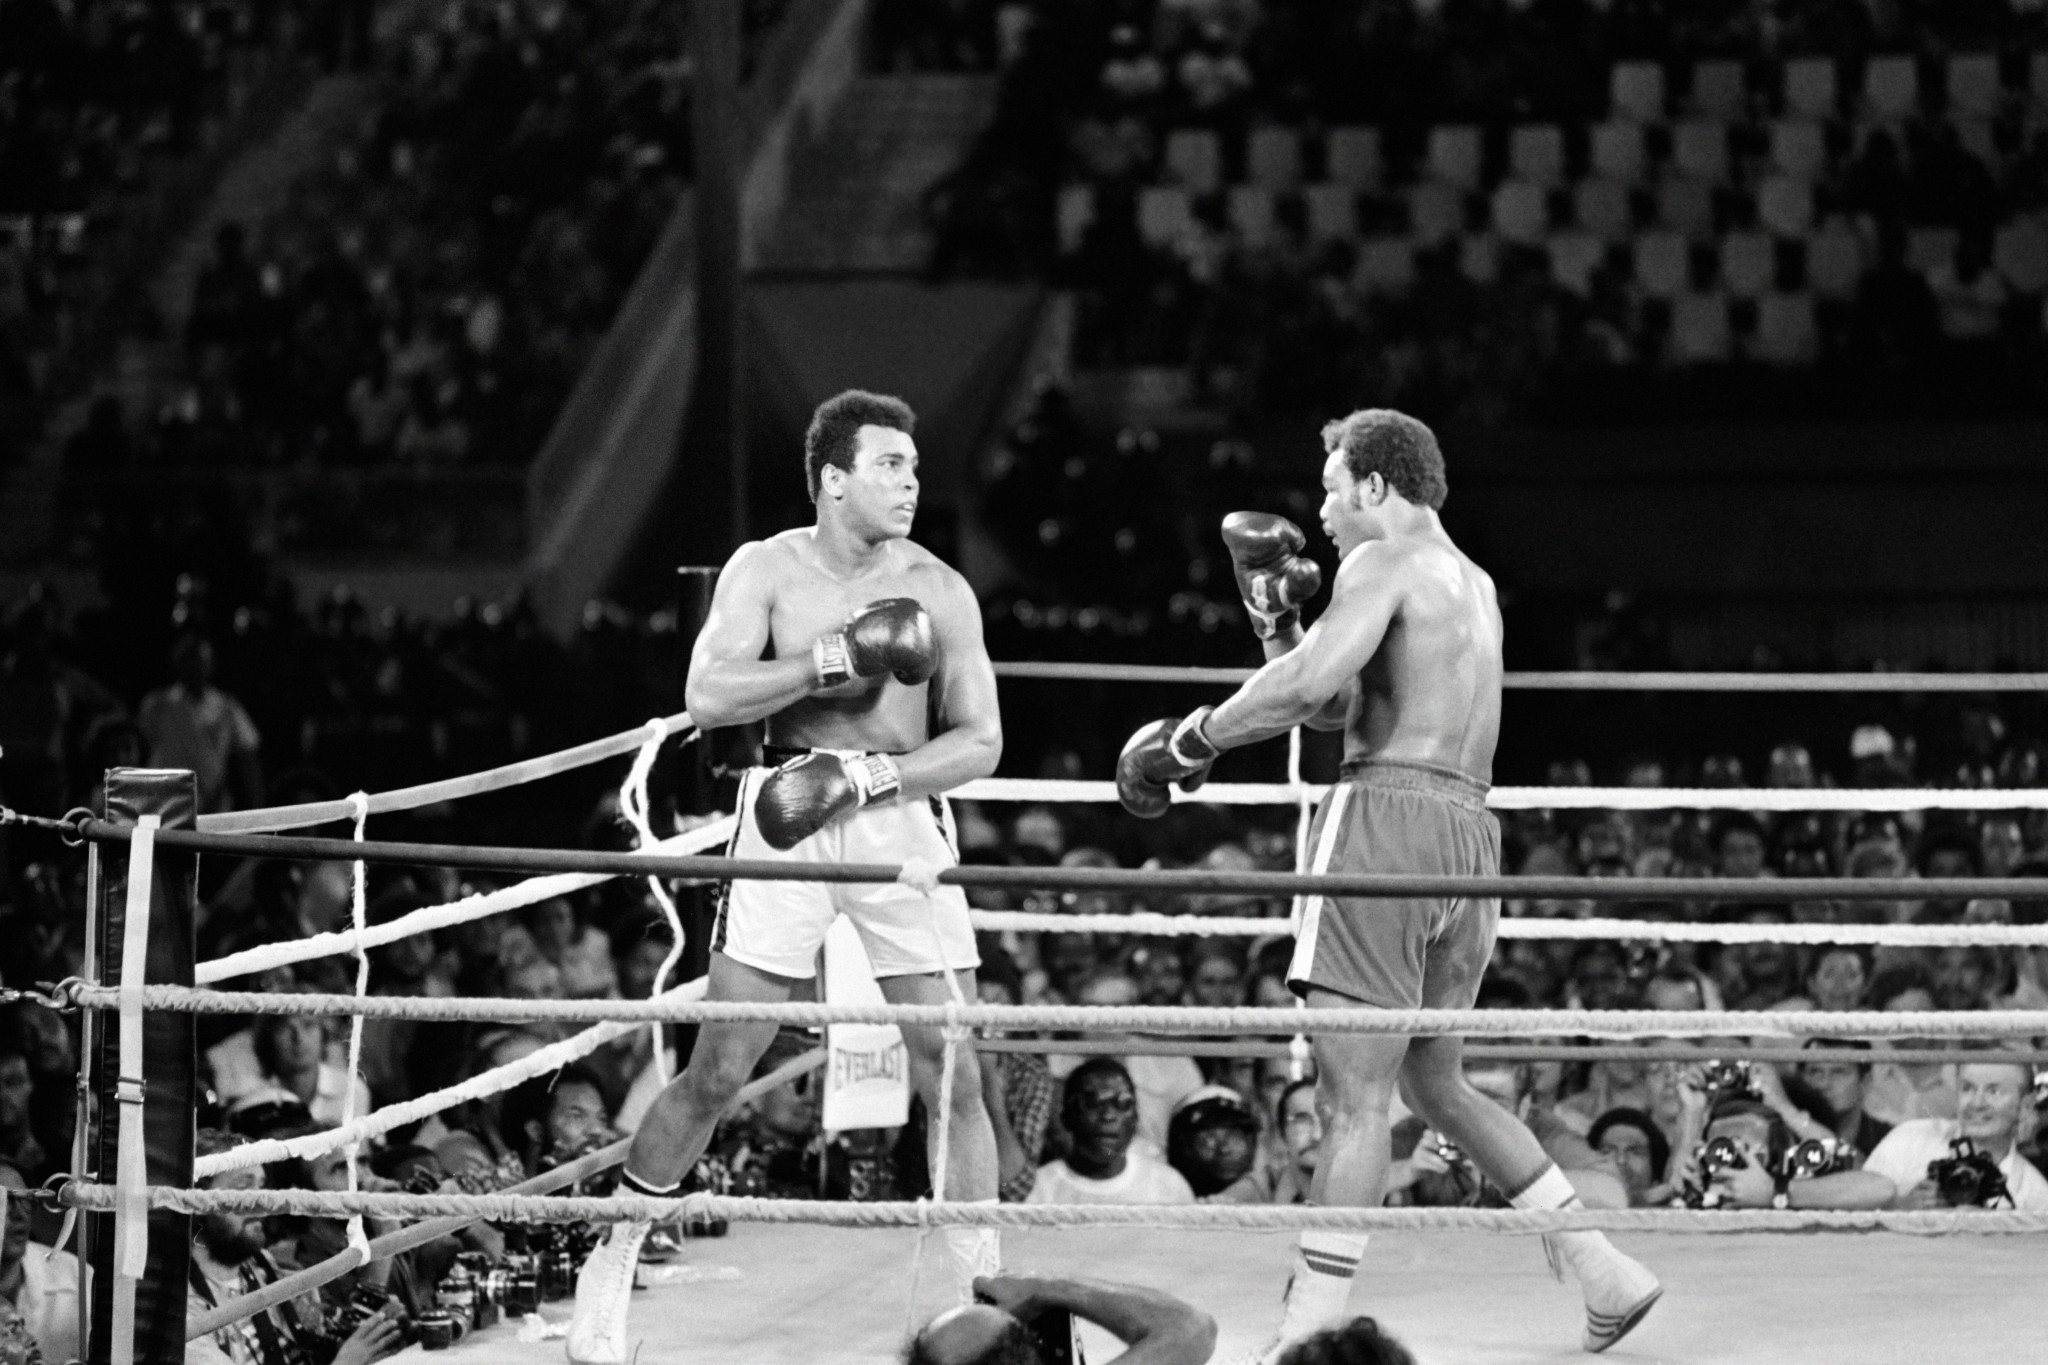 The nightwatchman tactic has similarities with Muhammad Ali's rope-a-dope strategy at the Rumble in the Jungle ©Getty Images